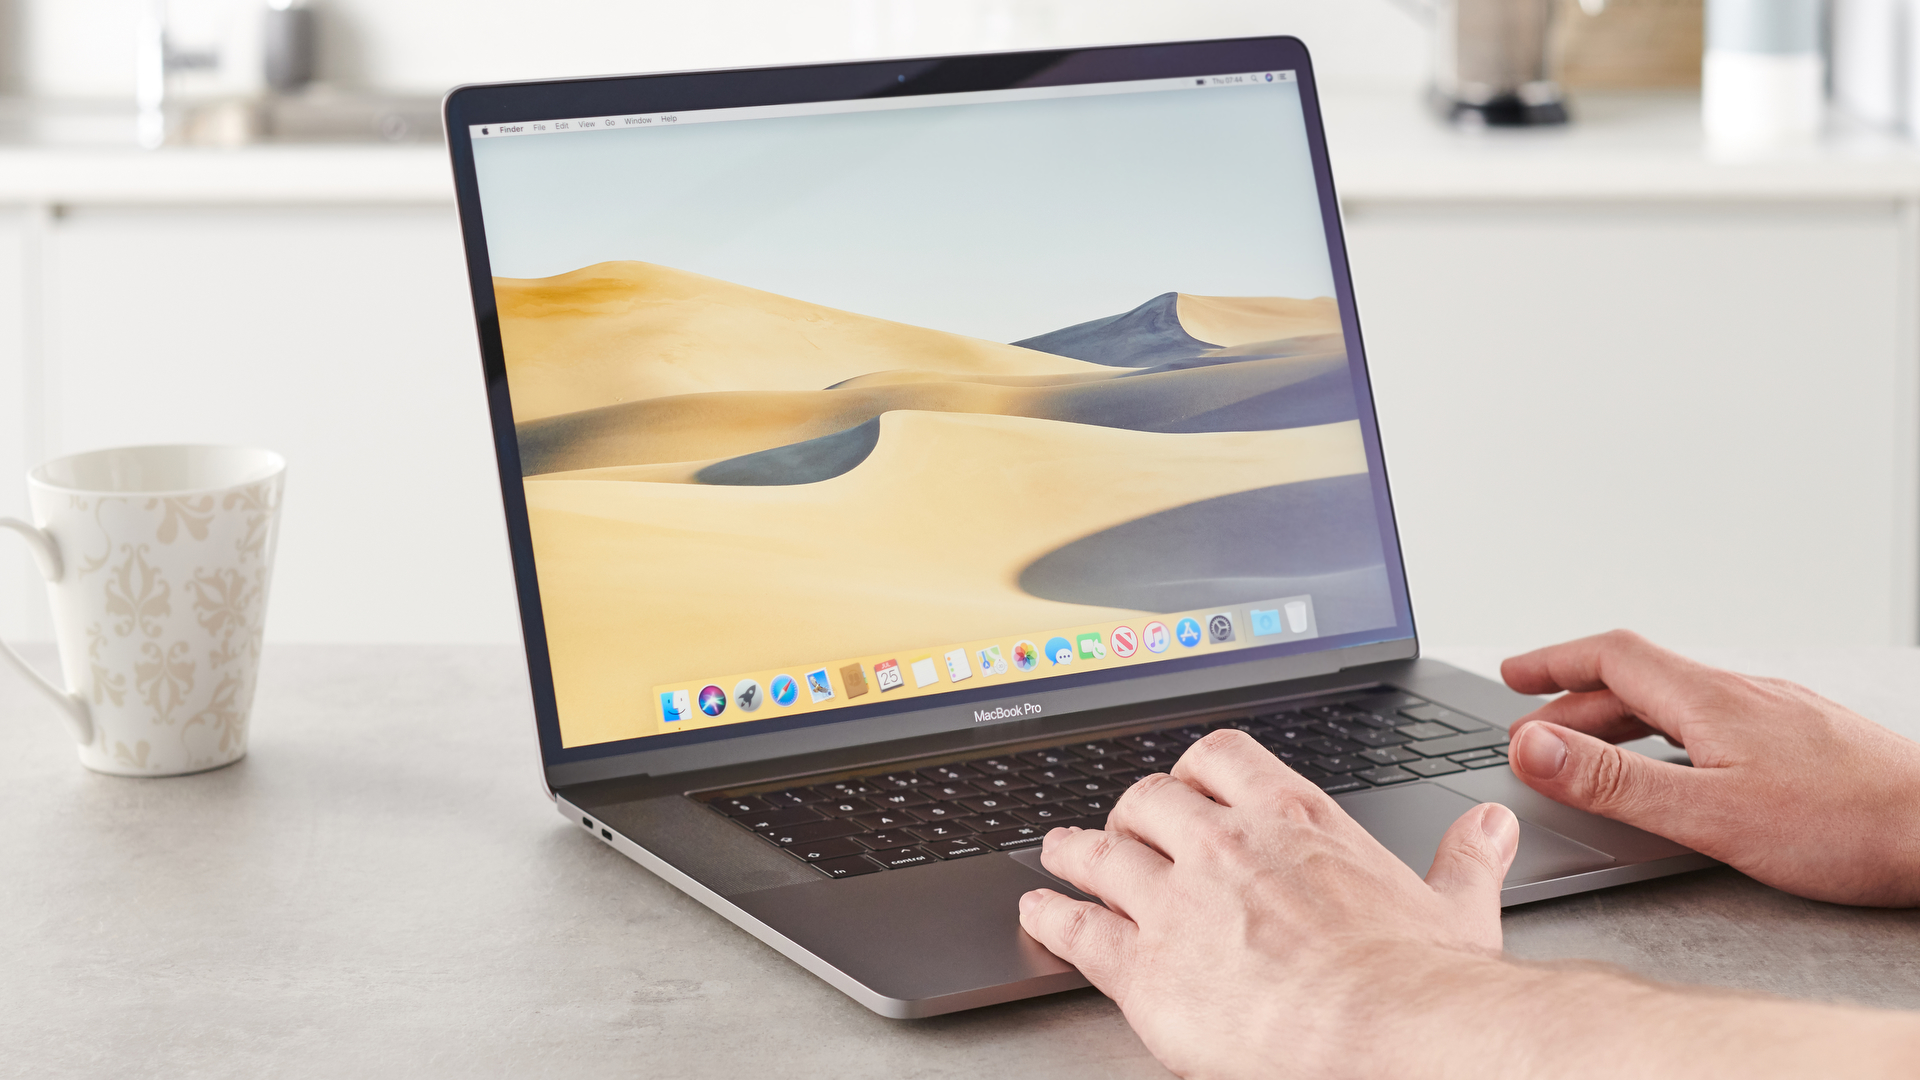 a3ifFxrZFbL2TYNGVwXVAb - MacBook Air 2019 vs MacBook Pro 2019: which is the best for you?